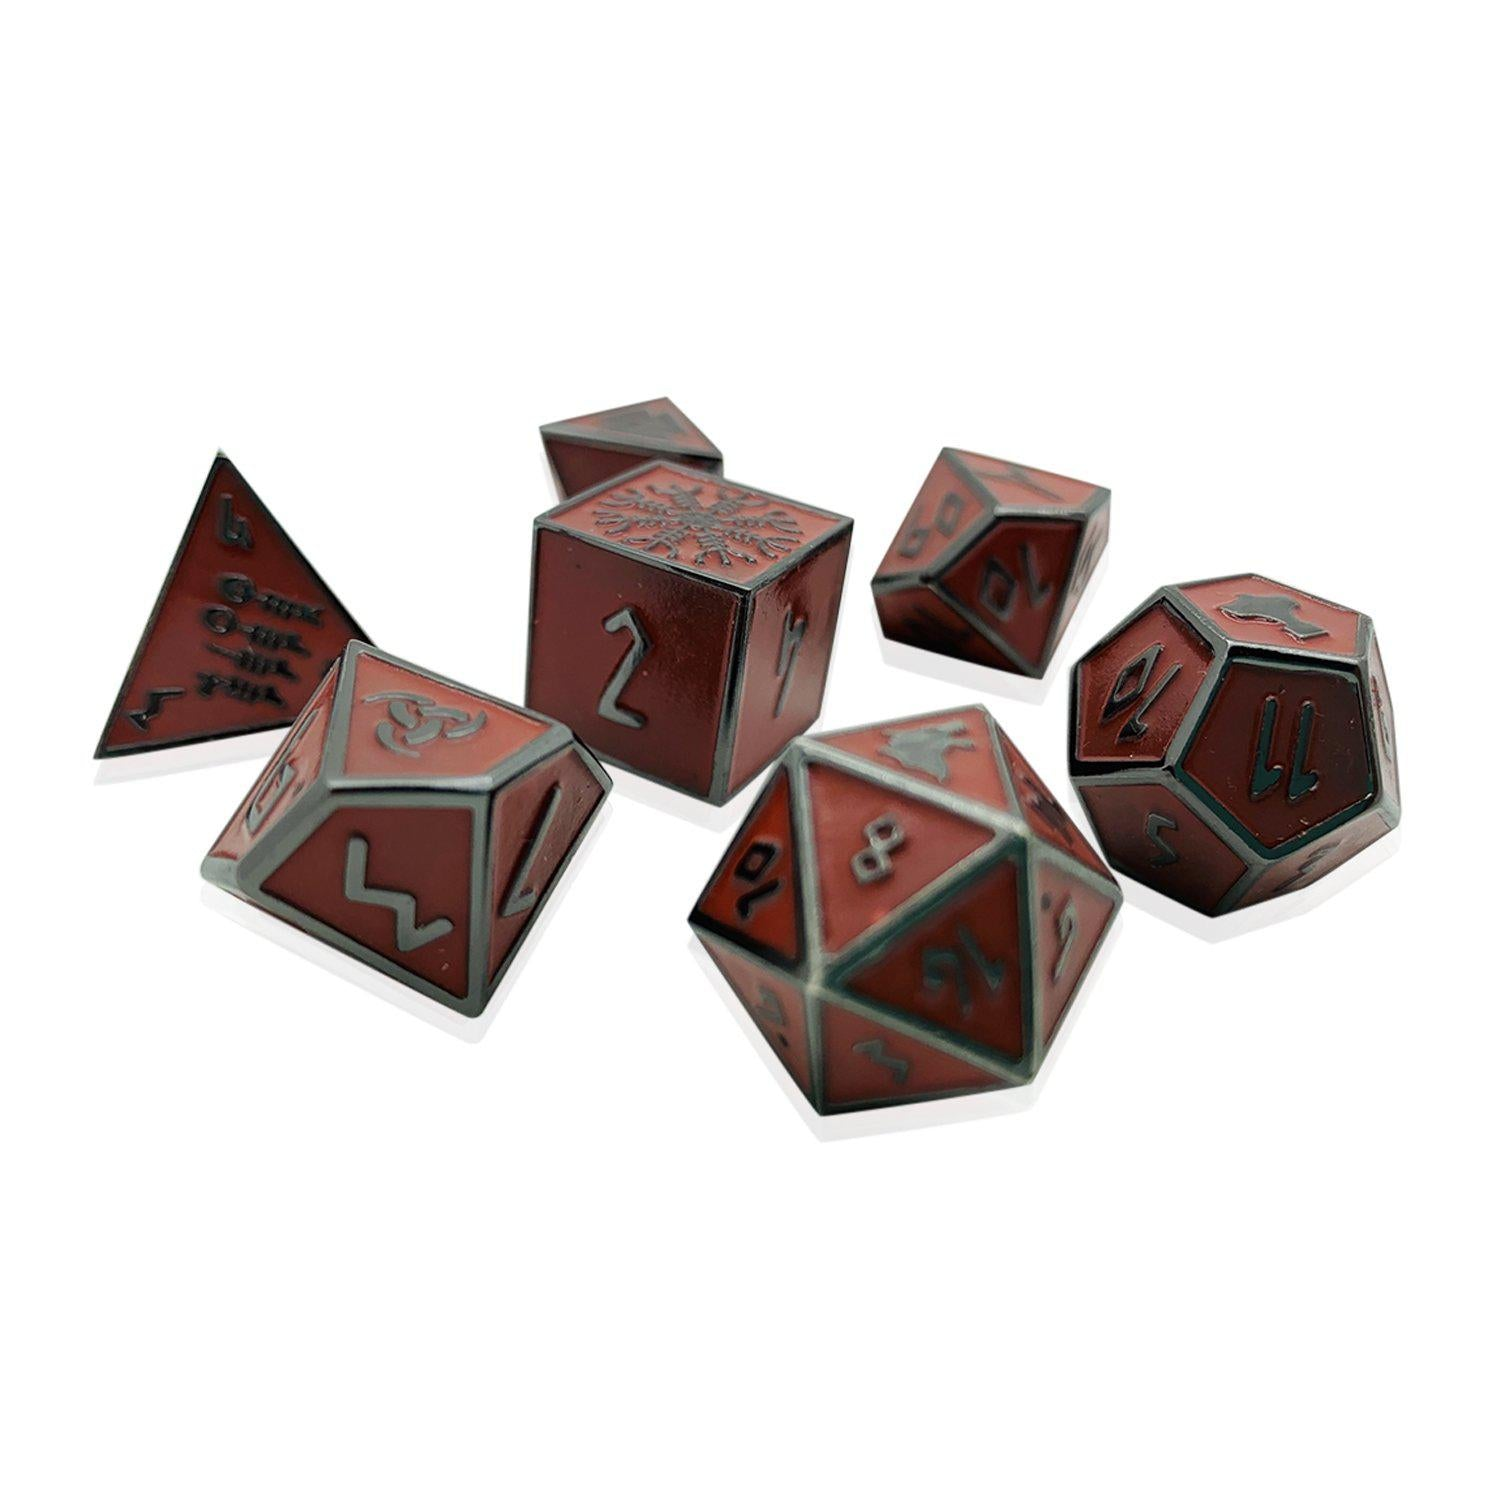 Valkyrie Norse Themed Metal Dice Set